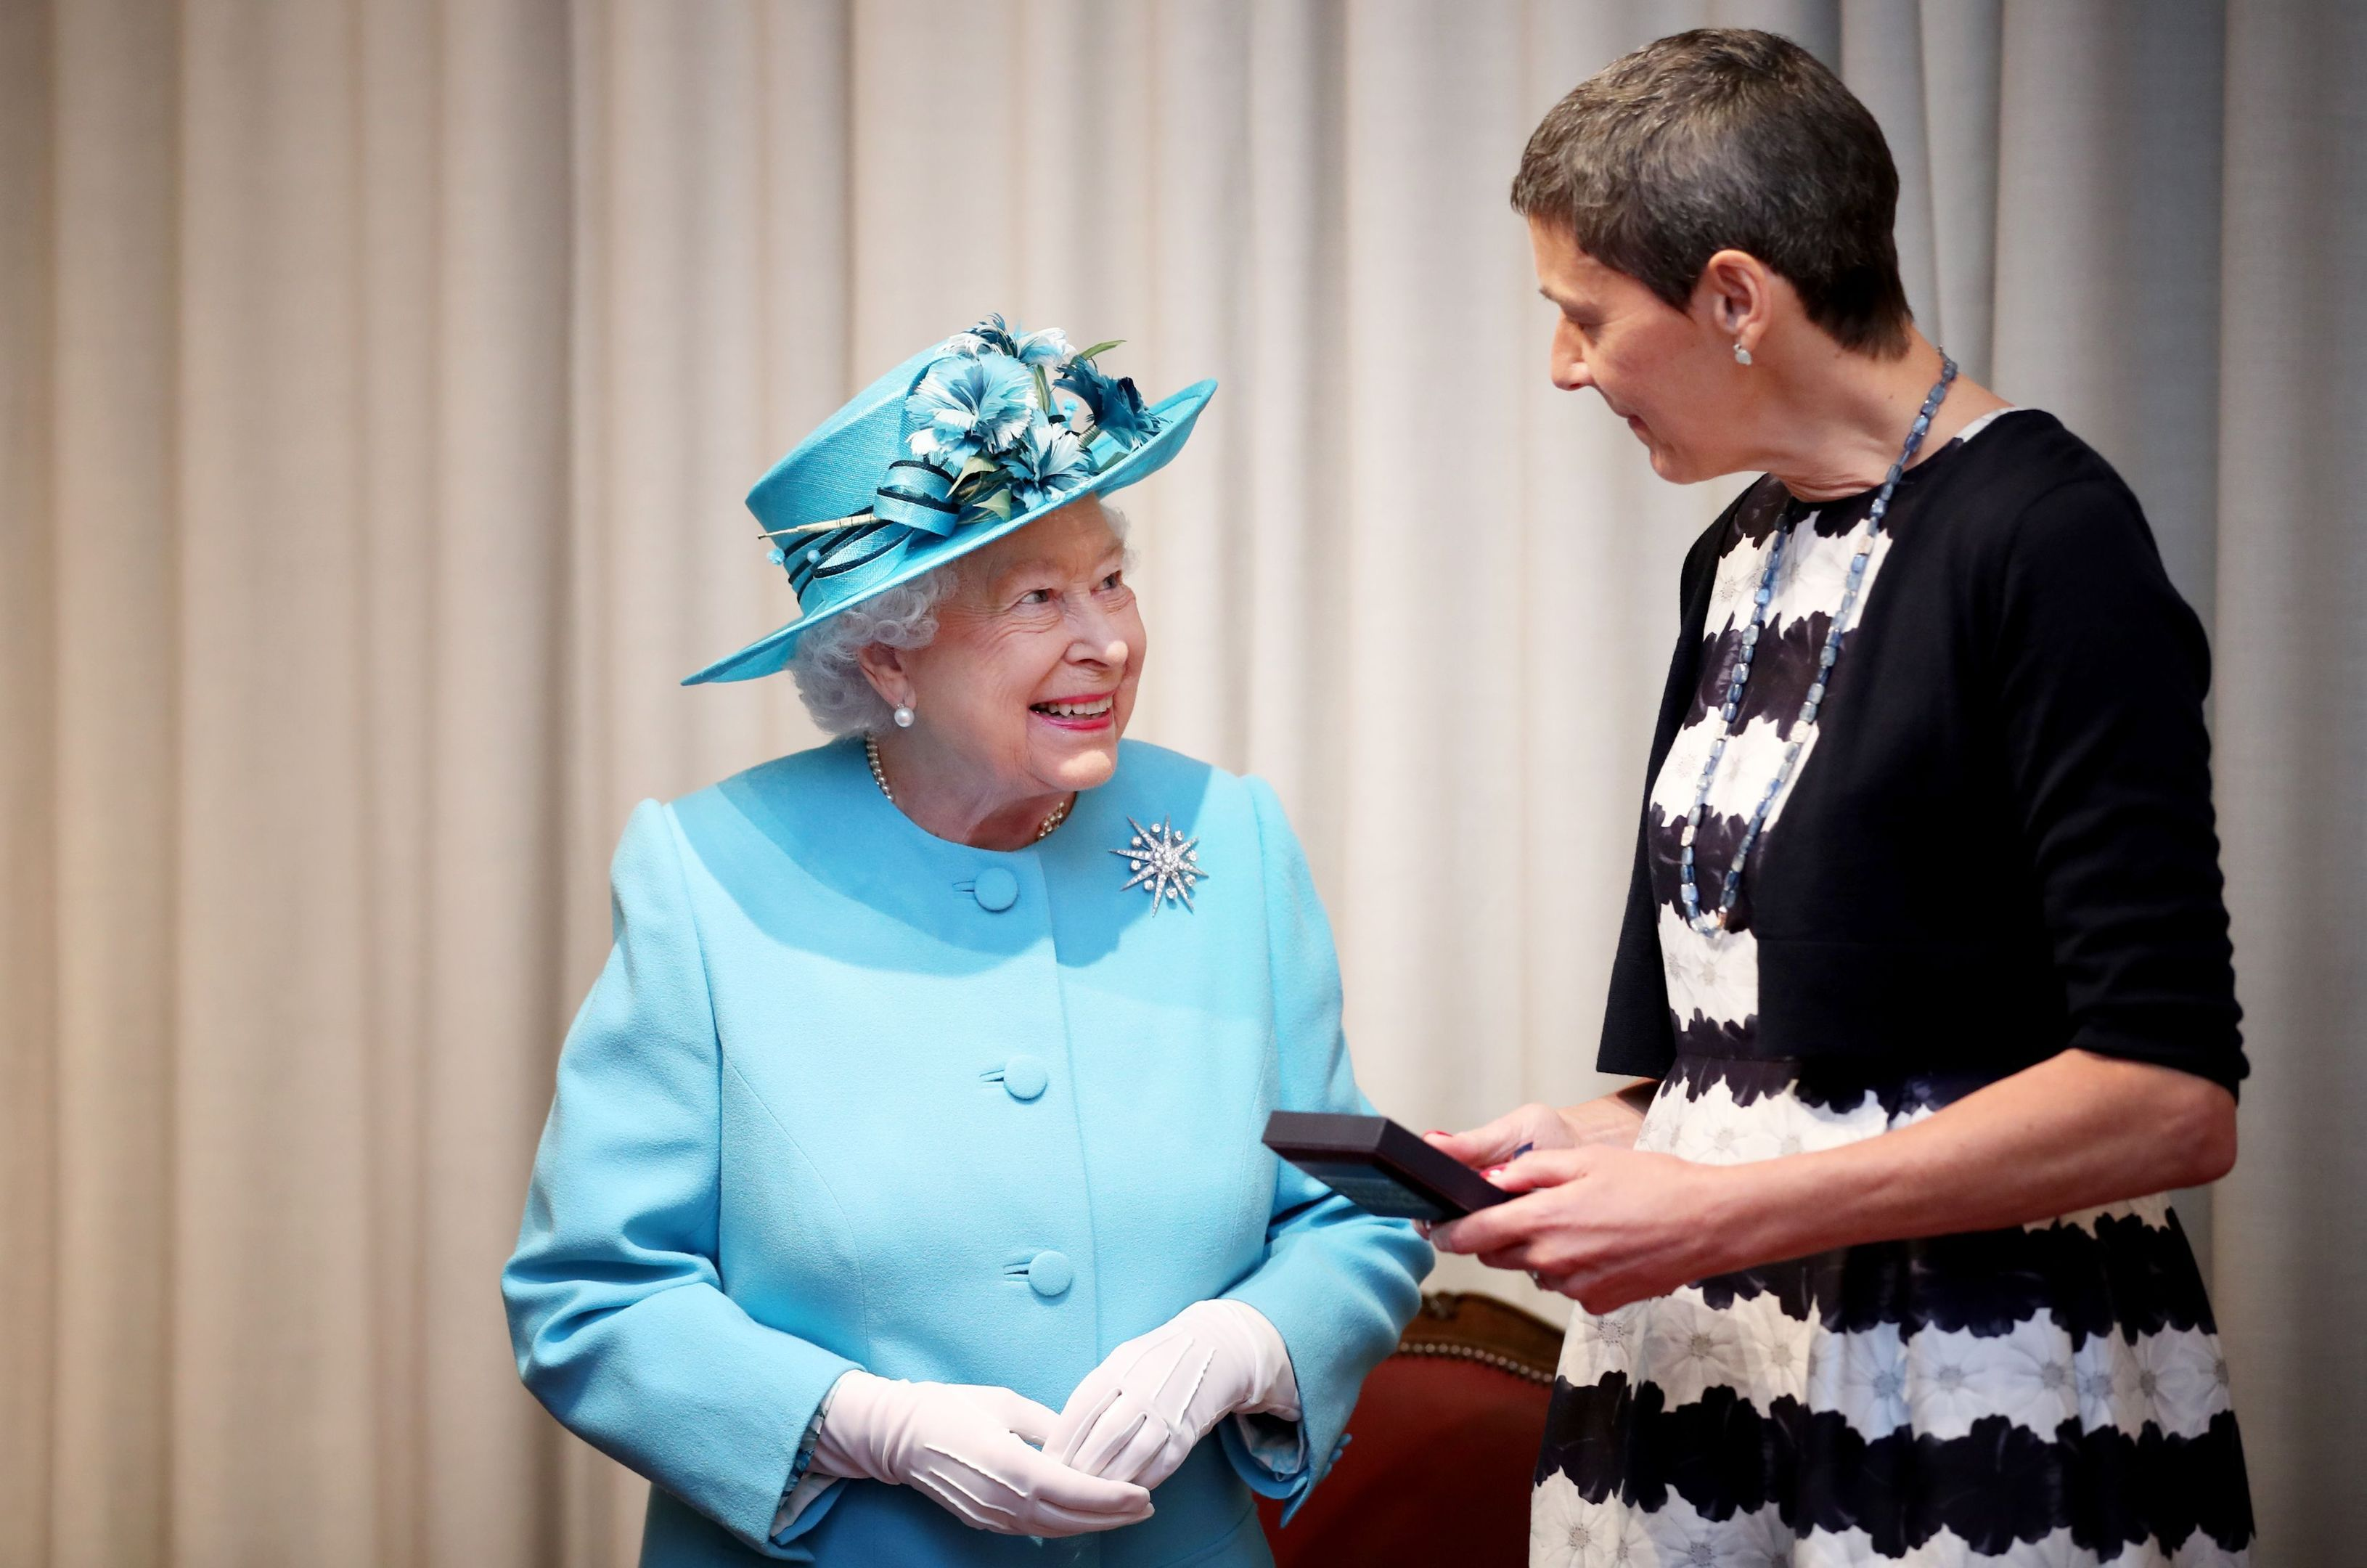 Queen Elizabeth II presents the Royal Medal to Professor Tessa Holyoake during a visit to the Royal Society of Edinburgh (Jane Barlow/PA Wire)